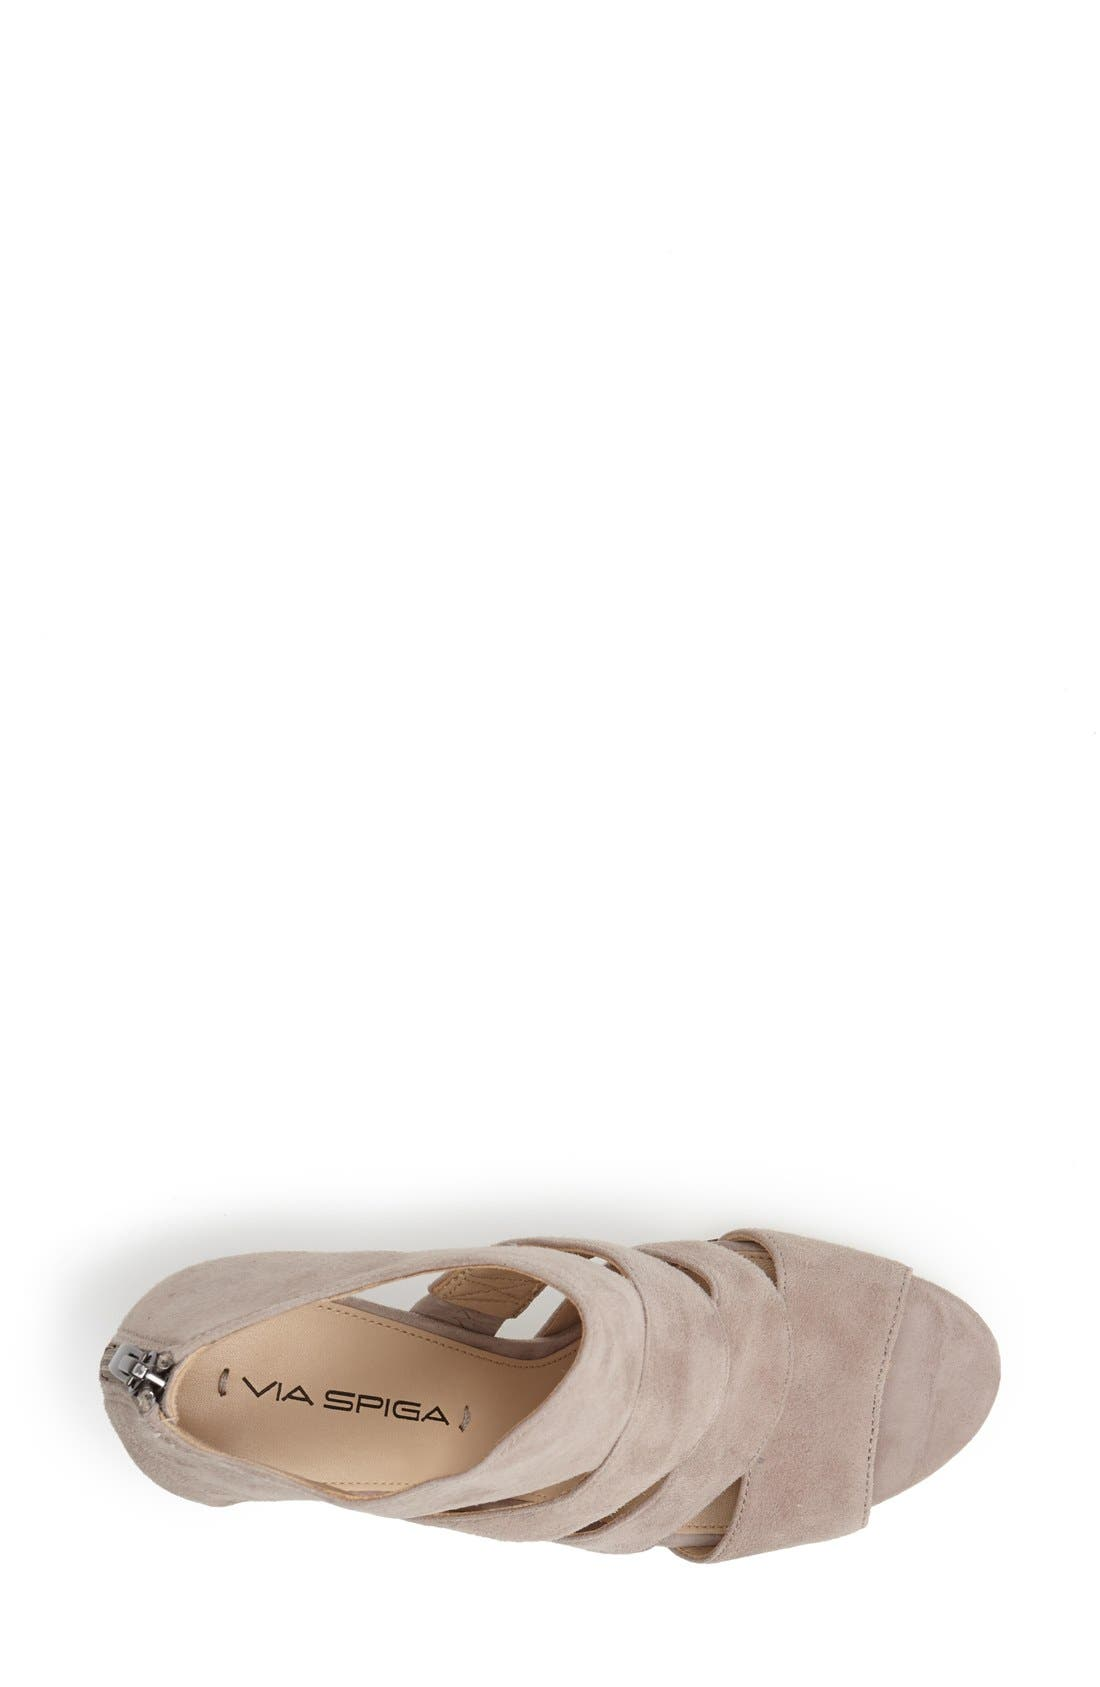 Alternate Image 4  - Via Spiga 'Fion' Wedge Sandal (Women)